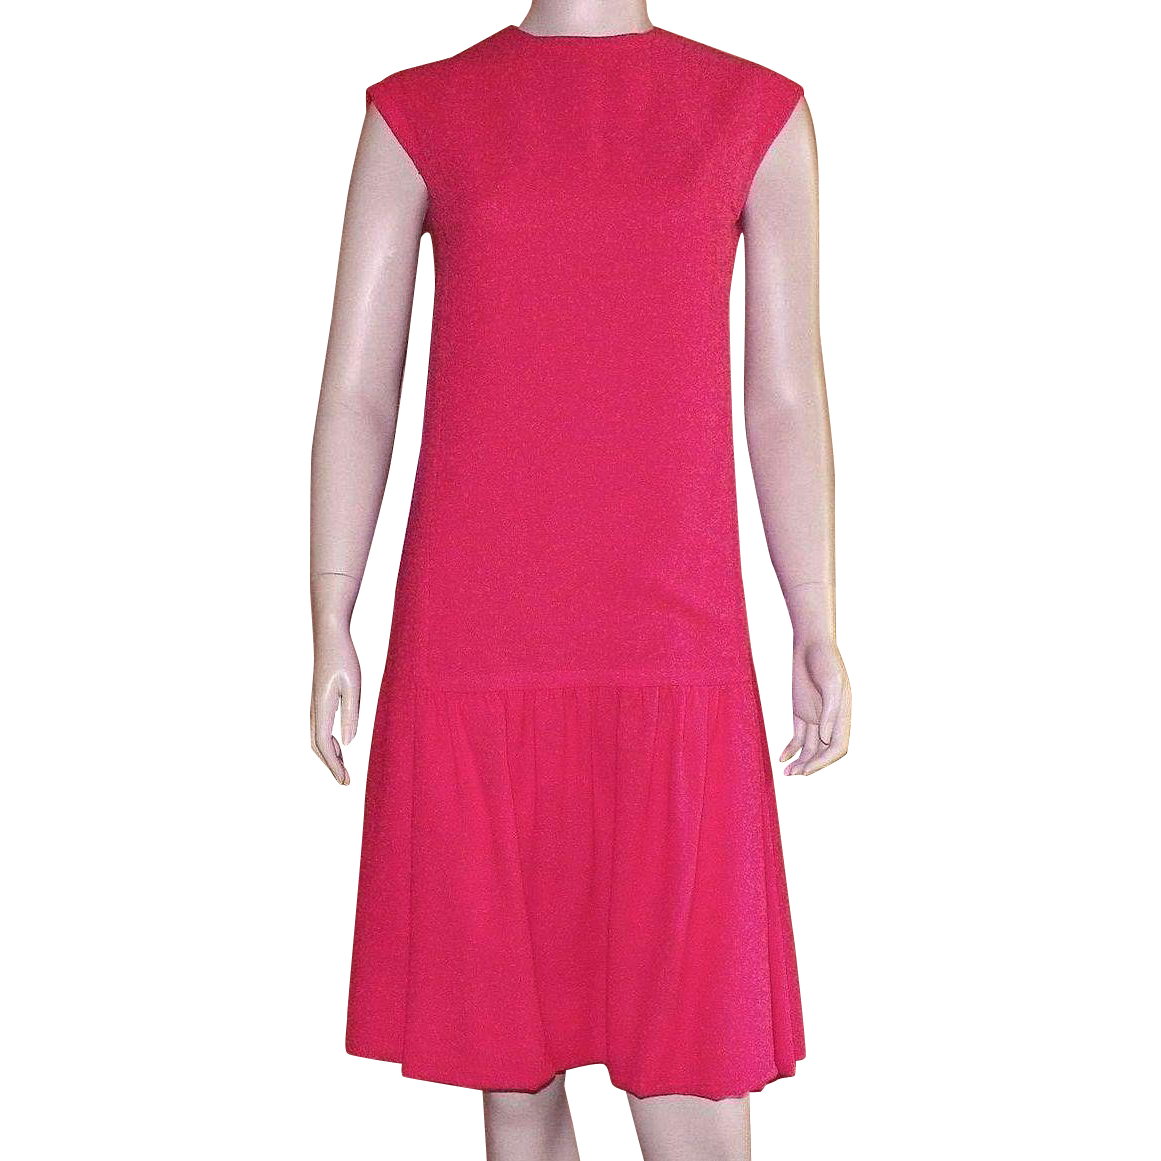 Vintage Jerry Parnis For Miss Martini Red Wool Crepe Dress 1950's